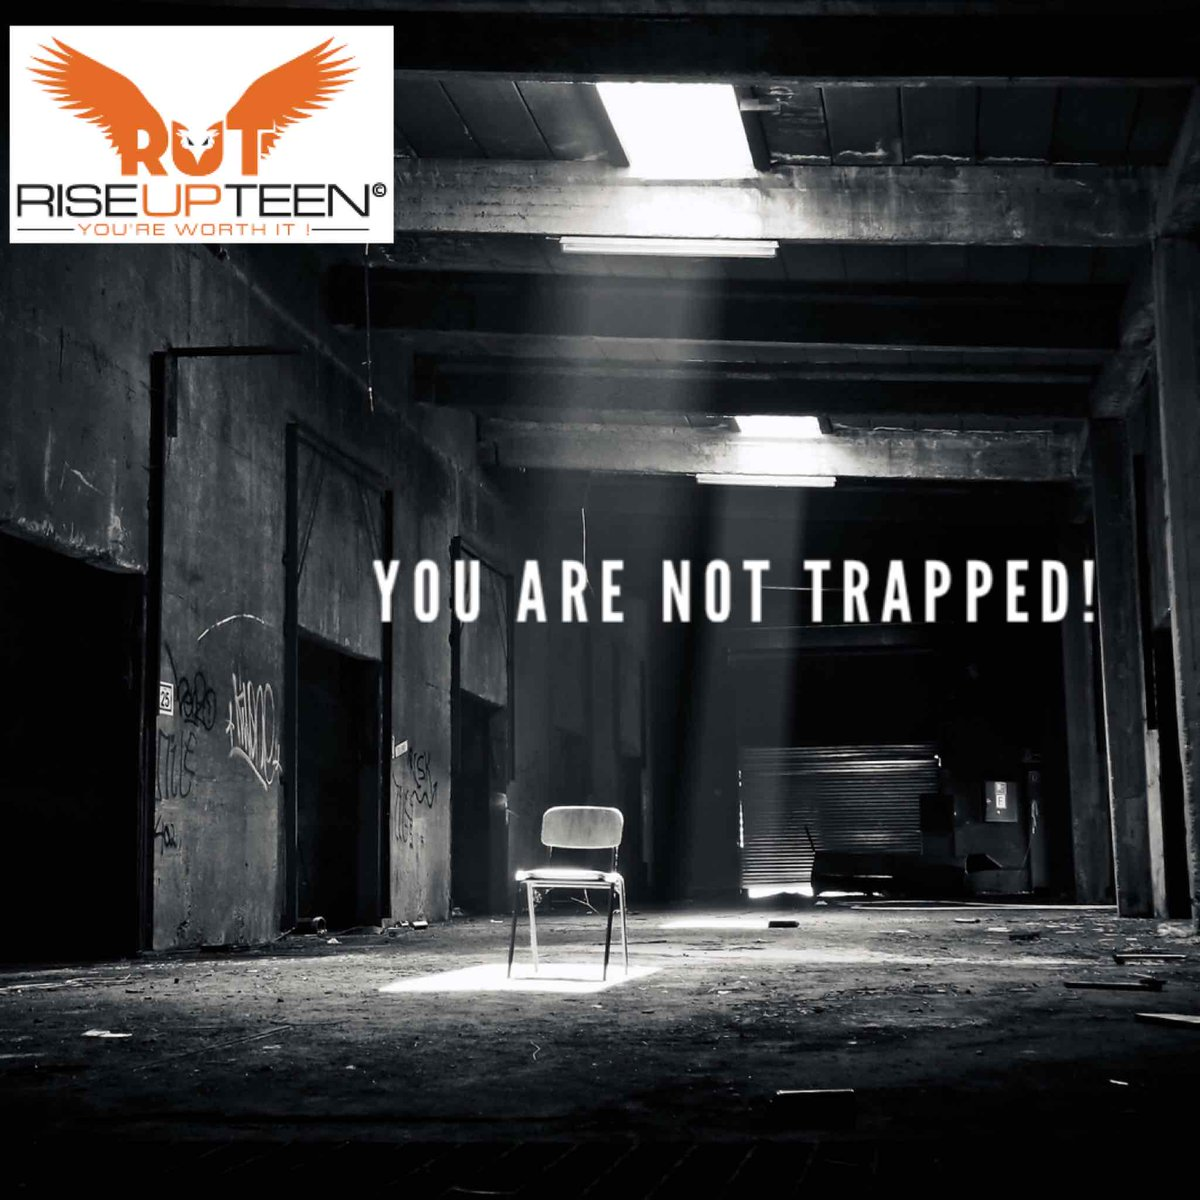 Don't you dare allow someone to make you feel like your stuck in a RUT! There is more for you. You just have to believe in yourself and push through! Its your time! #Riseupteen #RUT #Trapped #Depression #Teens #Darkness #Light #SOAR #Eagles #Dare #Believe #Motivation #Inspiration